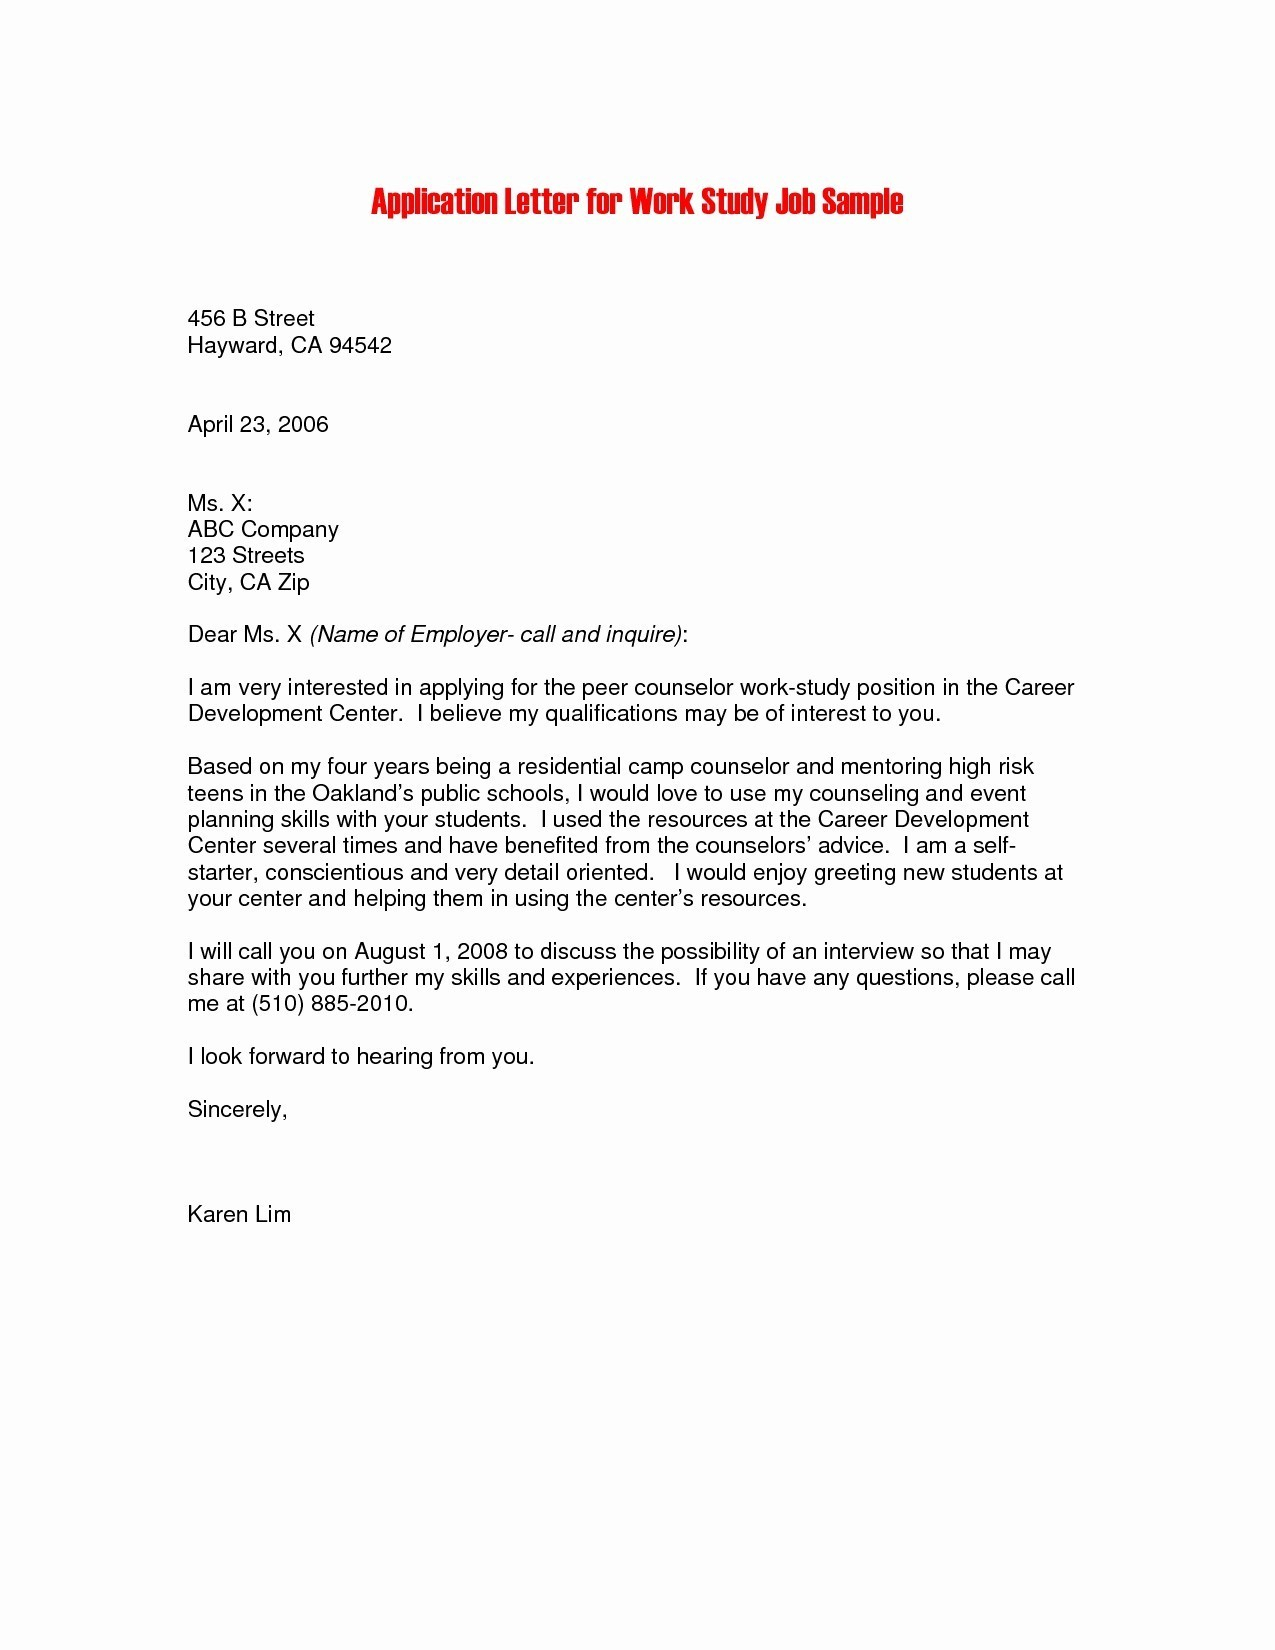 Letter Of Interest Template Pdf - Ideas Of Offer Letter Templates In Doc 50 Free Word Pdf Documents